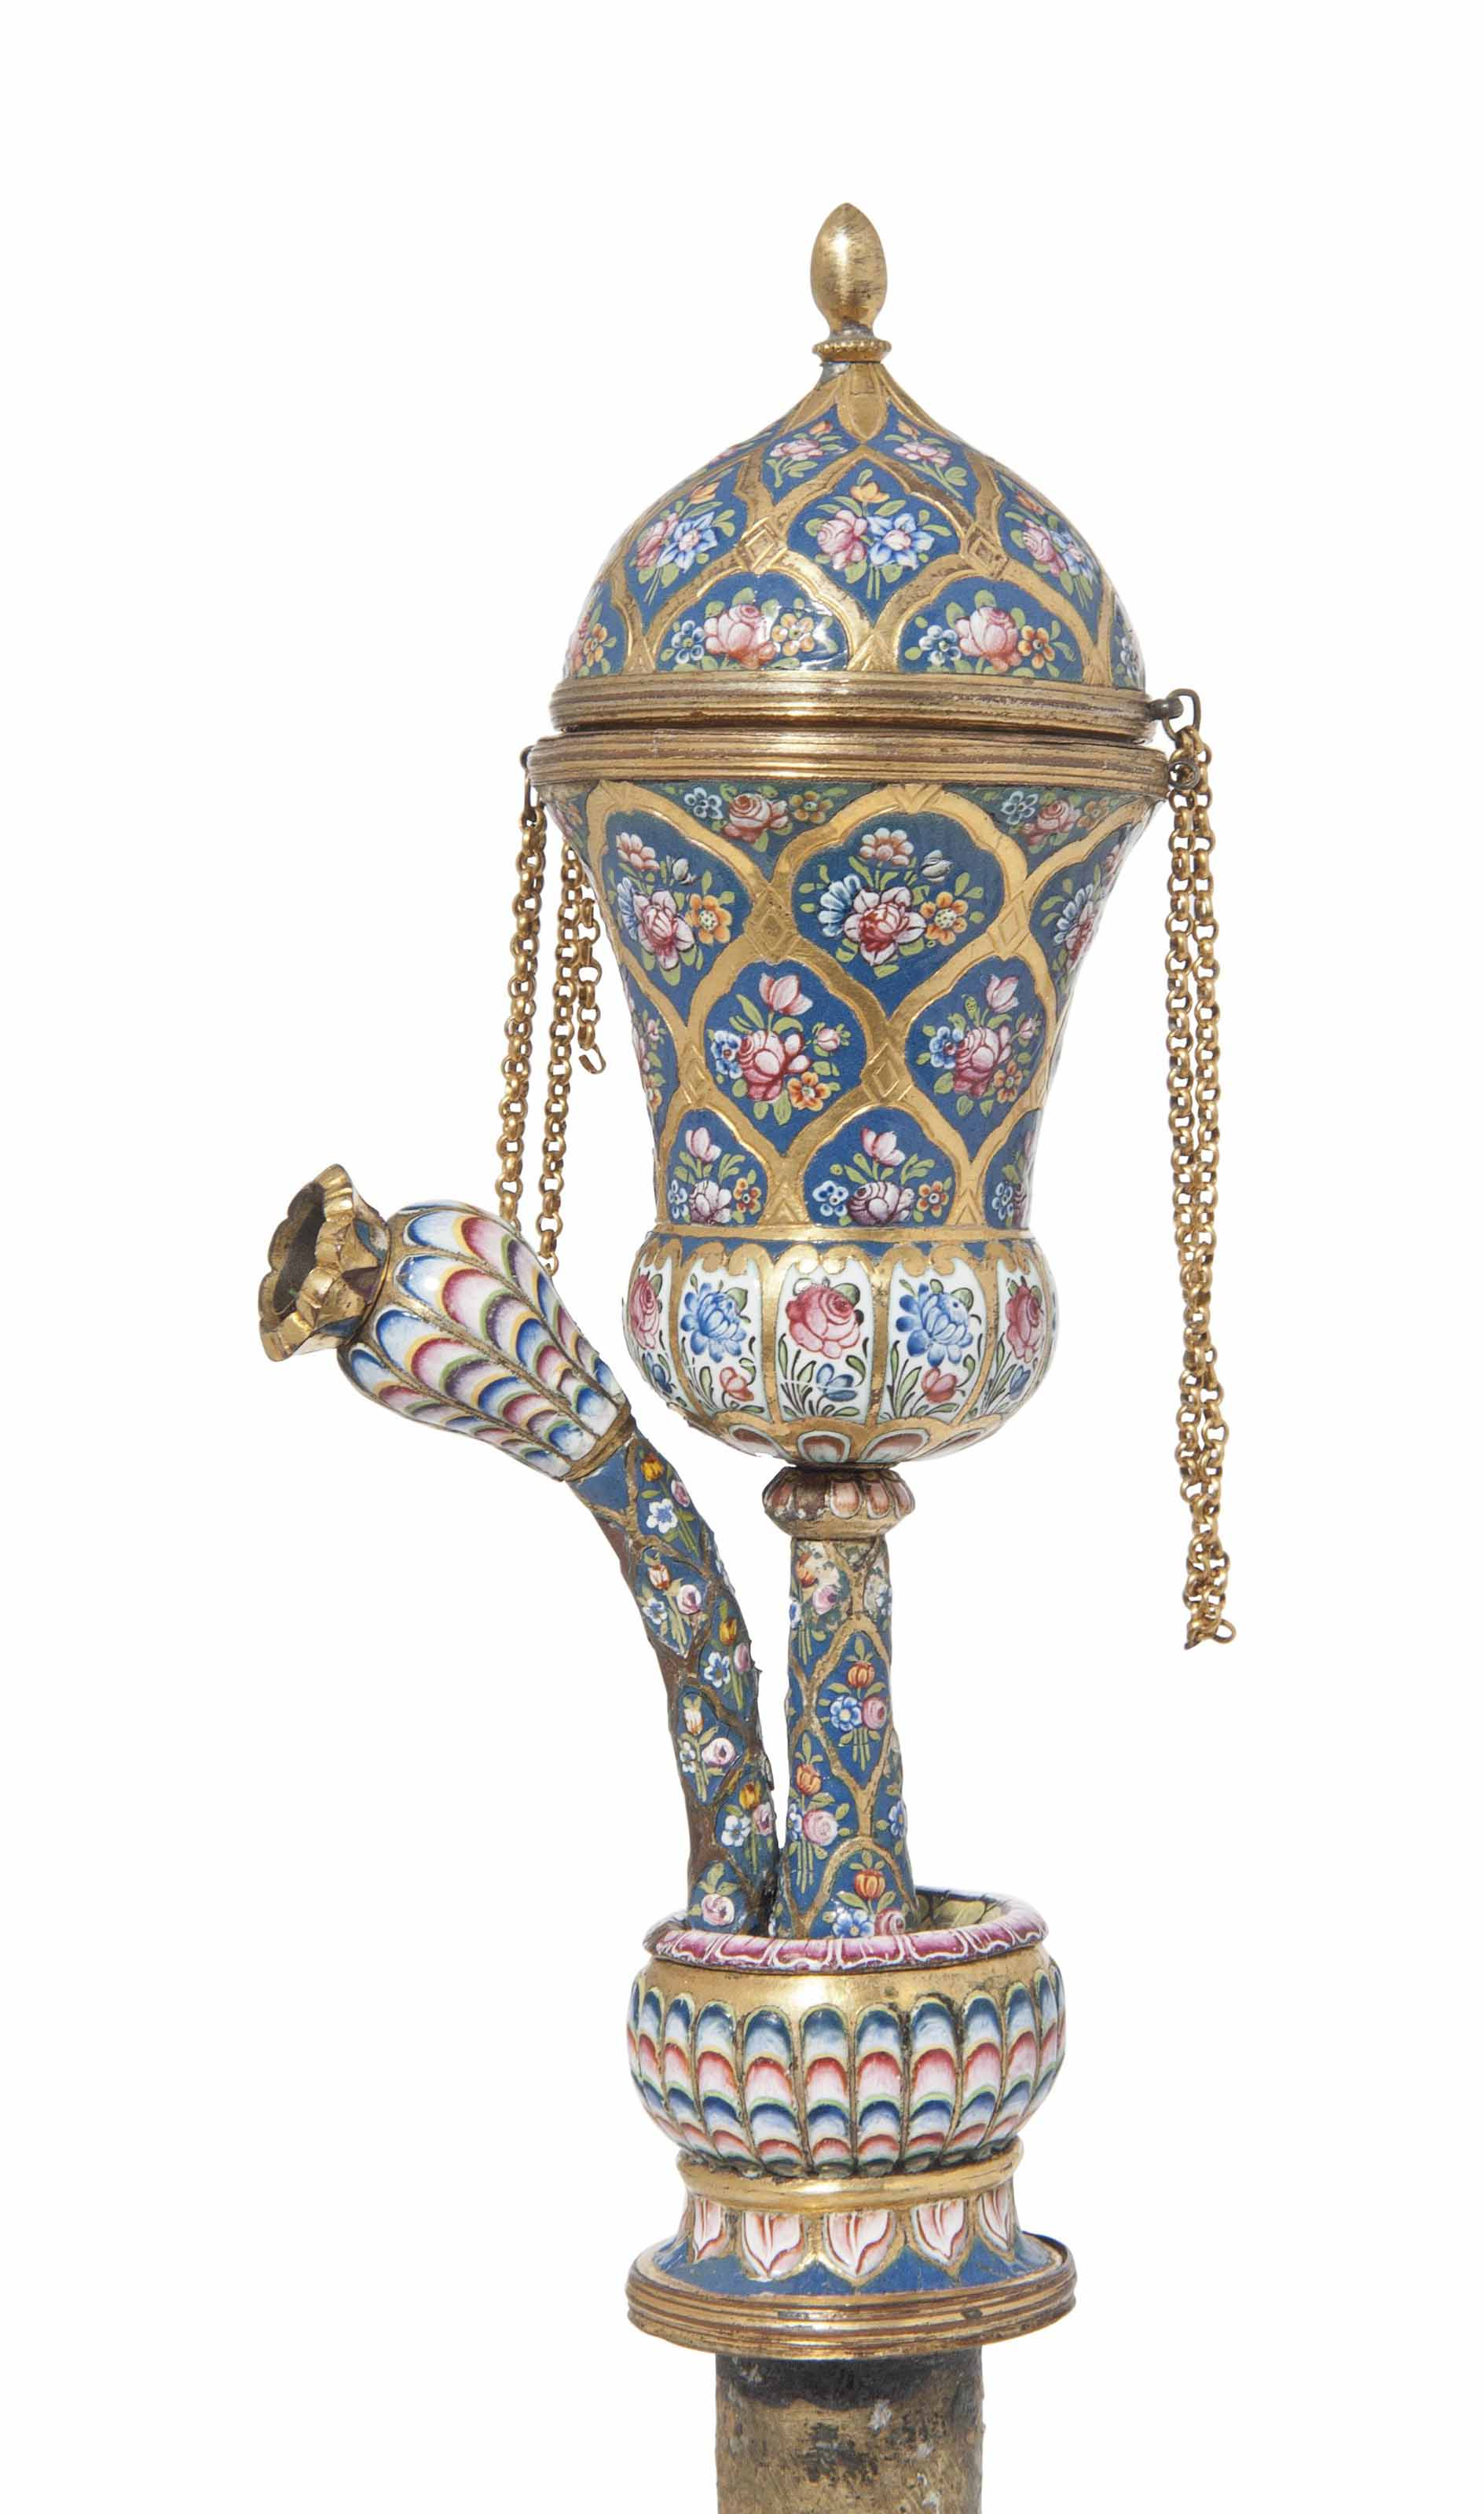 A GOLD AND ENAMEL QALYAN FURNACE AND STEM